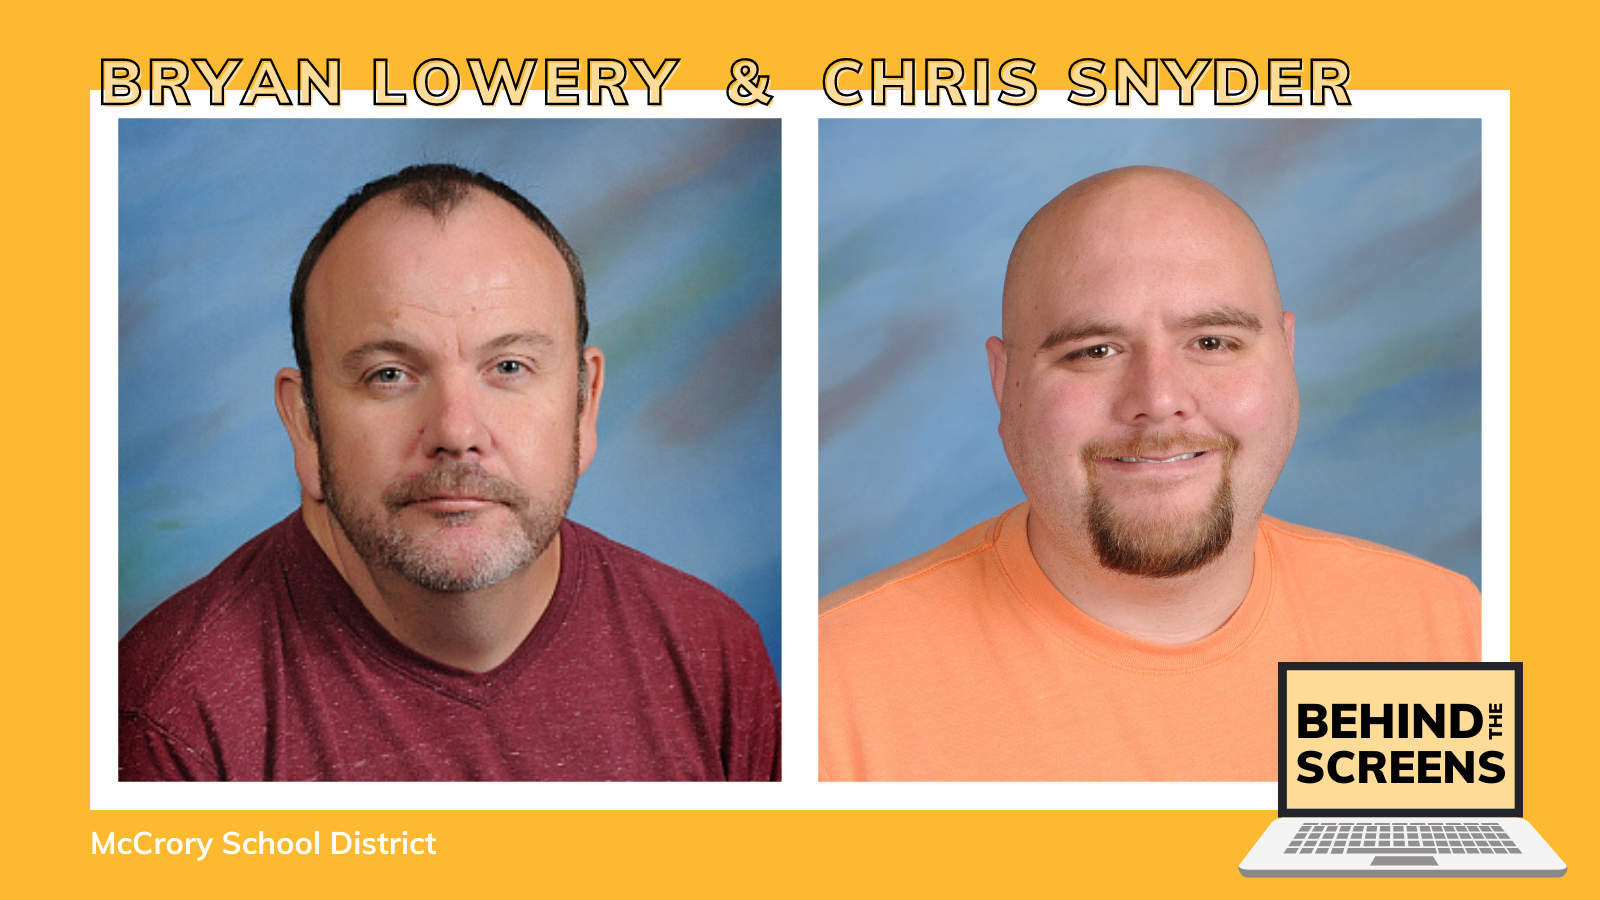 photos of Brian Lowery and Chris Snyder